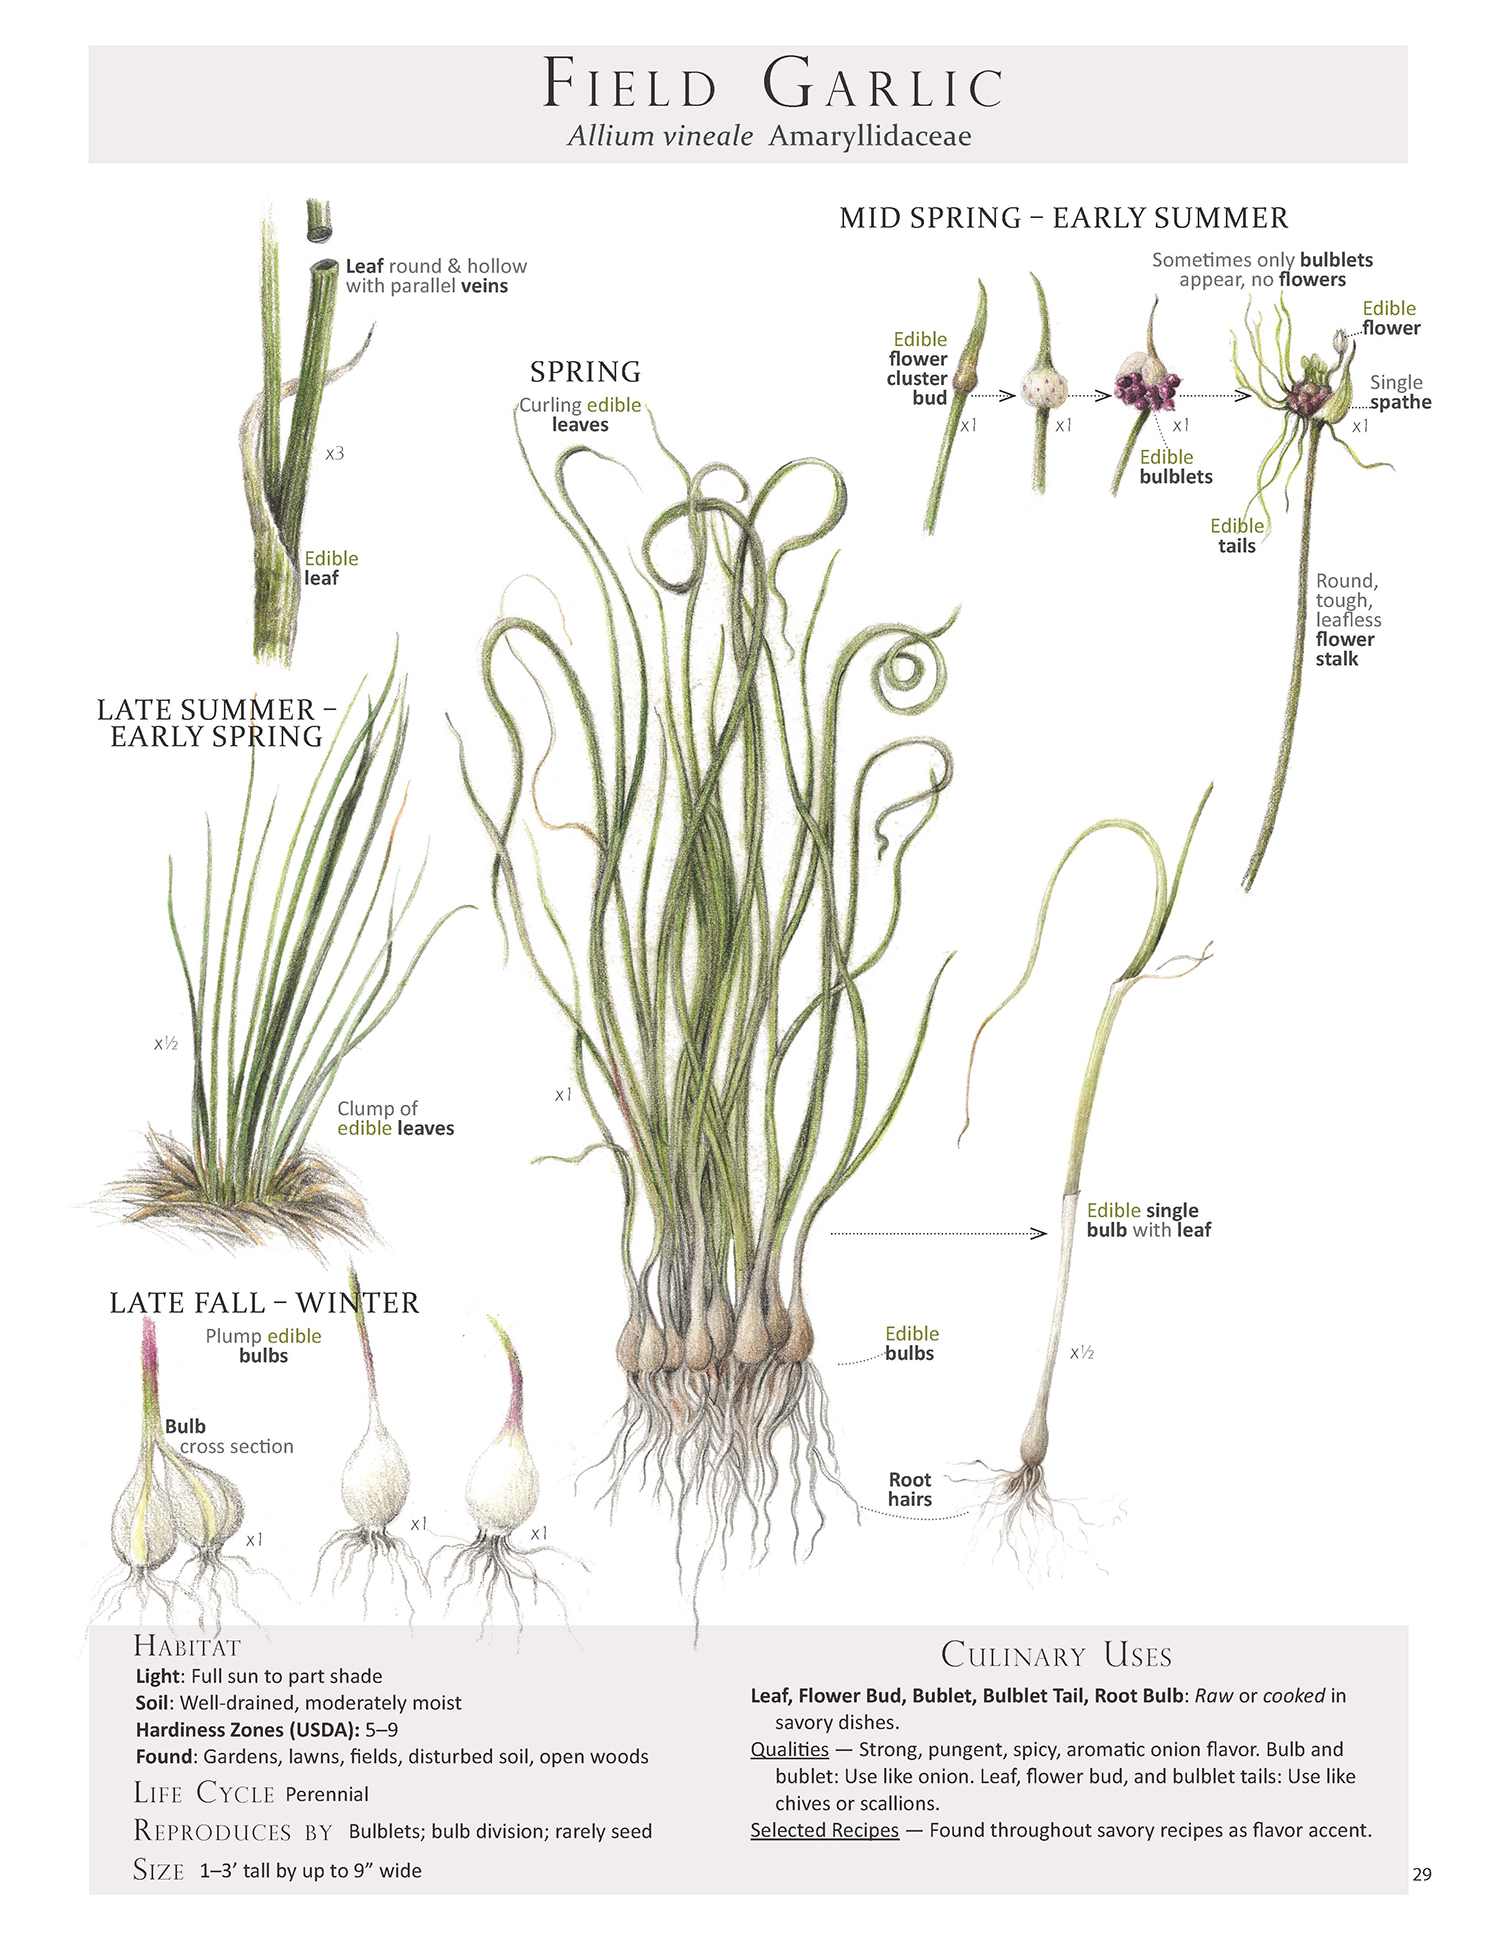 Field Garlic Plant Map from Foraging & Feasting: A Field Guide and Wild Food Cookbook by Dina Falconi; illustrated by Wendy Hollender  http://bit.ly/1Auh44Q